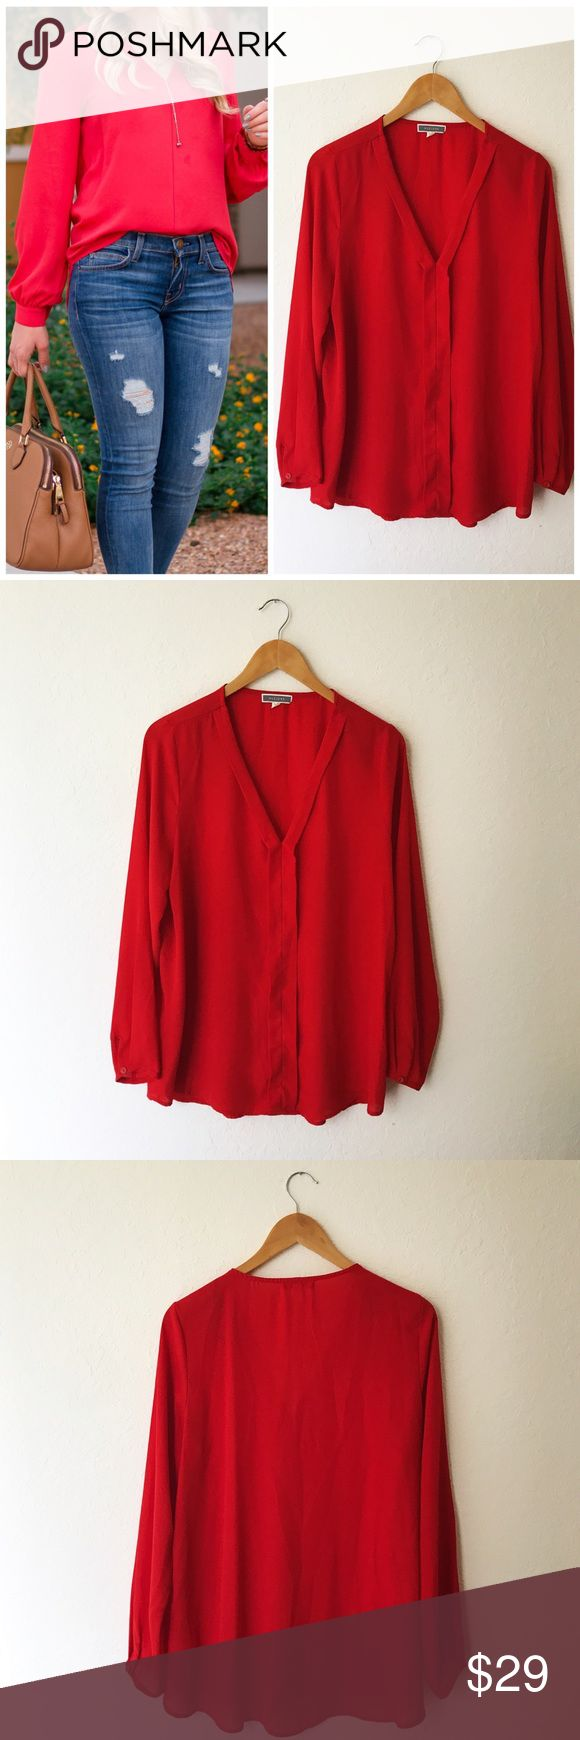 Pleione Nordstrom Red Long Sleeve V-Neck Blouse Excellent preowned condition. Gorgeous red color is the perfect Top for not only the upcoming holidays, but for any season. *Note stock photo is for style inspiration and is not the actual item for sale* Pleione Tops Blouses